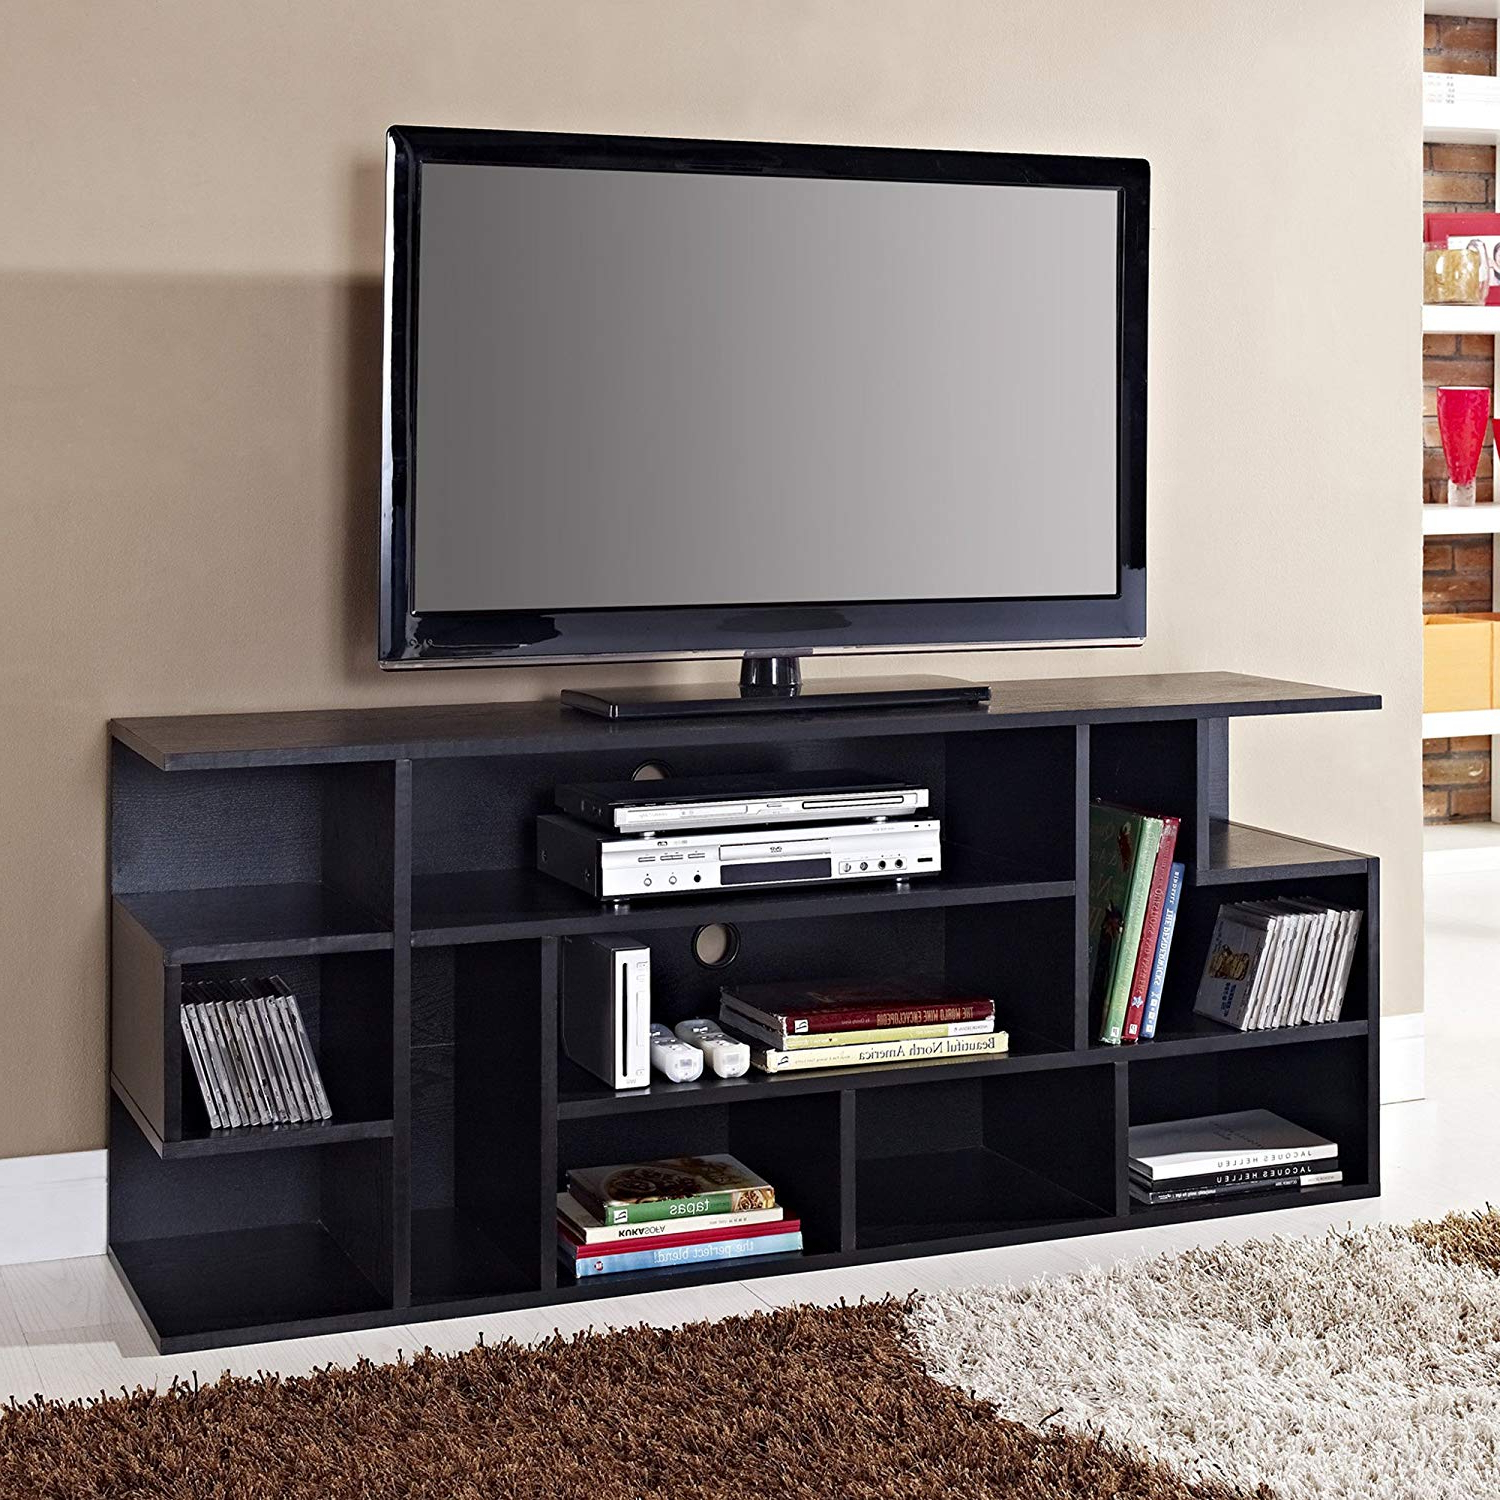 "Amazon: We Furniture 60"" Black Wood Tv Stand Console: Kitchen For Well Known Abbot 60 Inch Tv Stands (Gallery 8 of 20)"